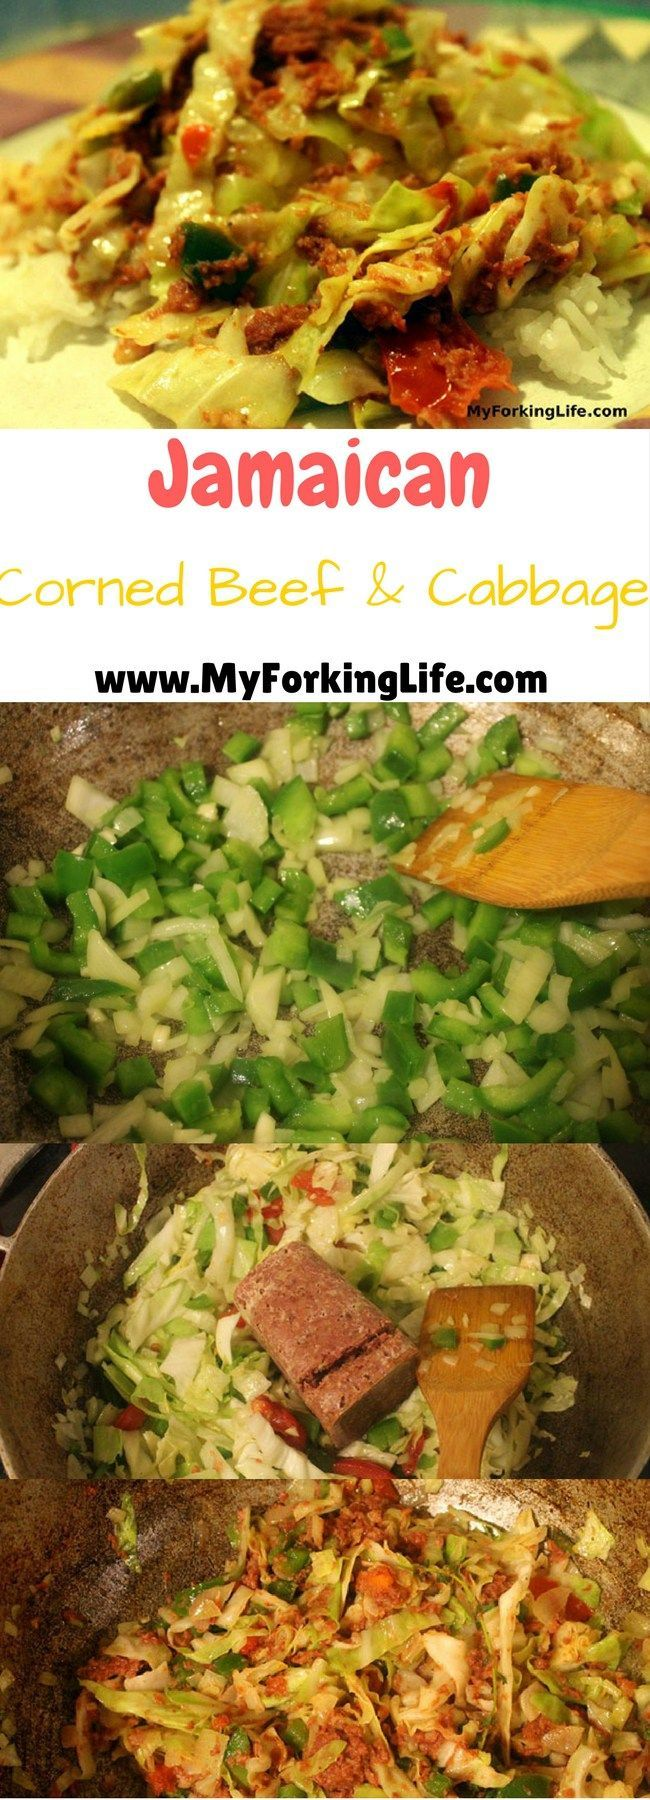 Jamaican Corned Beef & Cabbage is a traditional island dinner dish that can be on your table in a matter of minutes. Perfect for a quick and easy weeknight dinner.